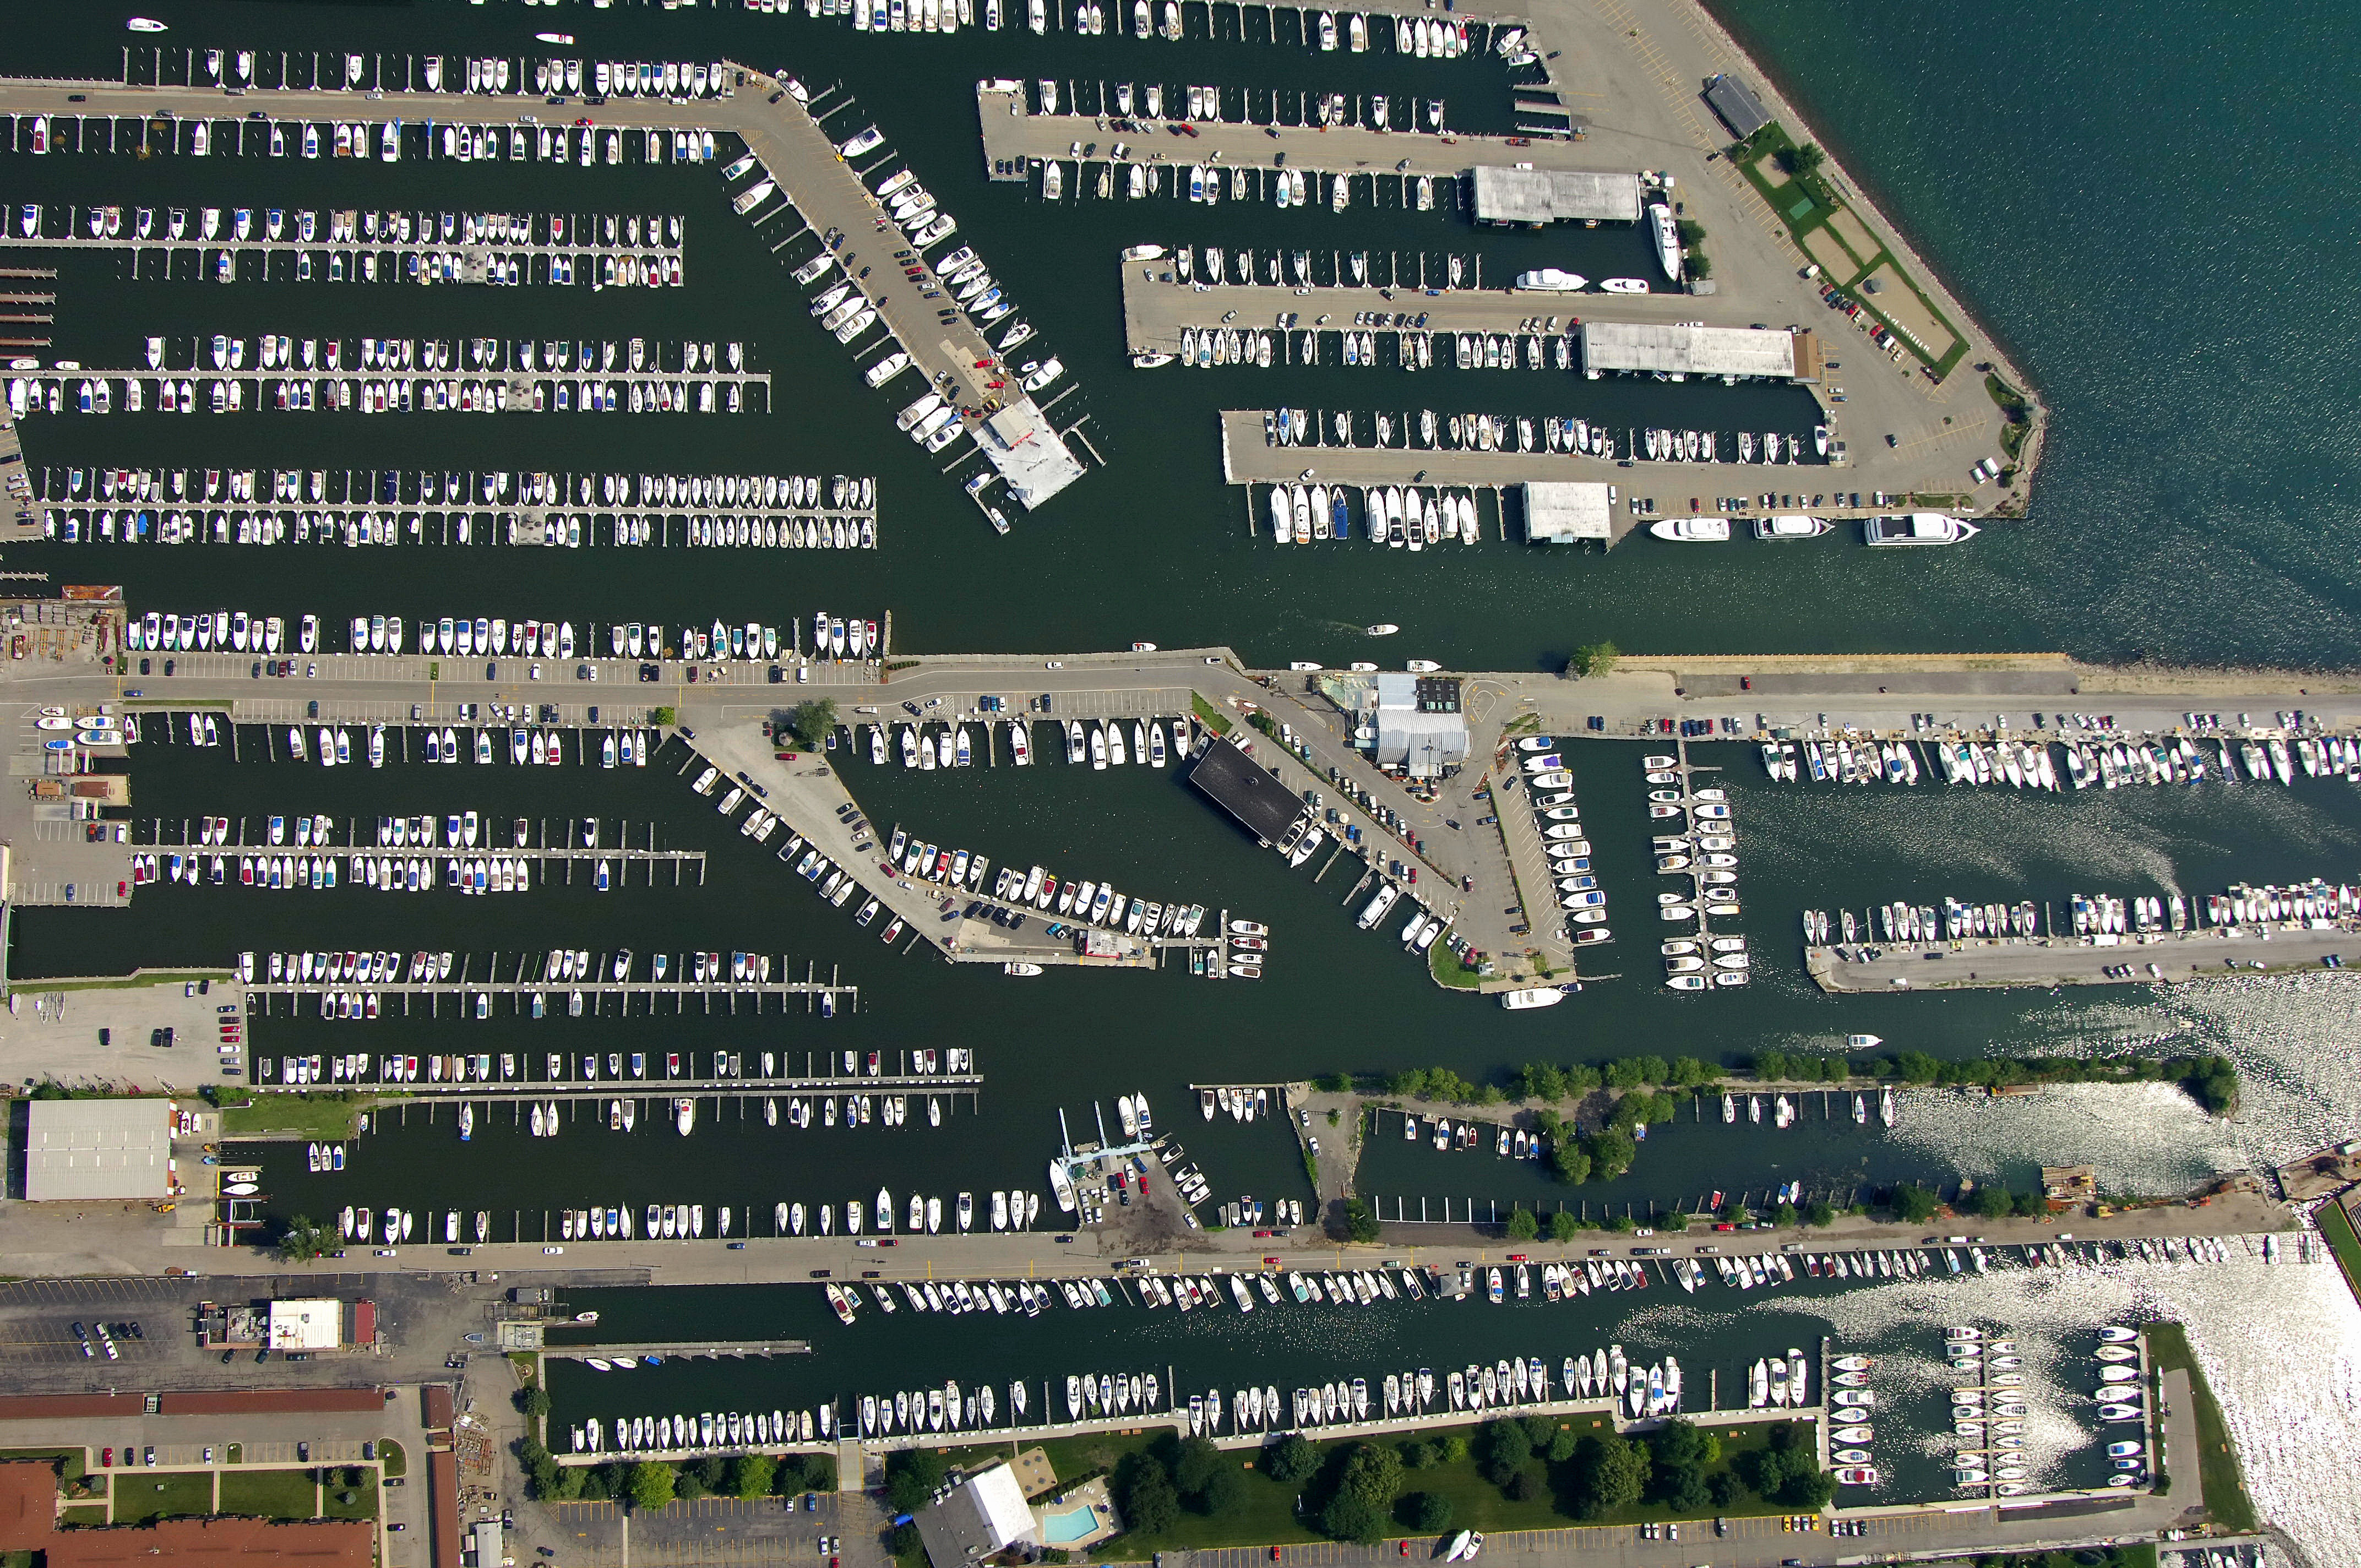 Emerald city boat club closed in st clair shores mi for Emerald city nickname